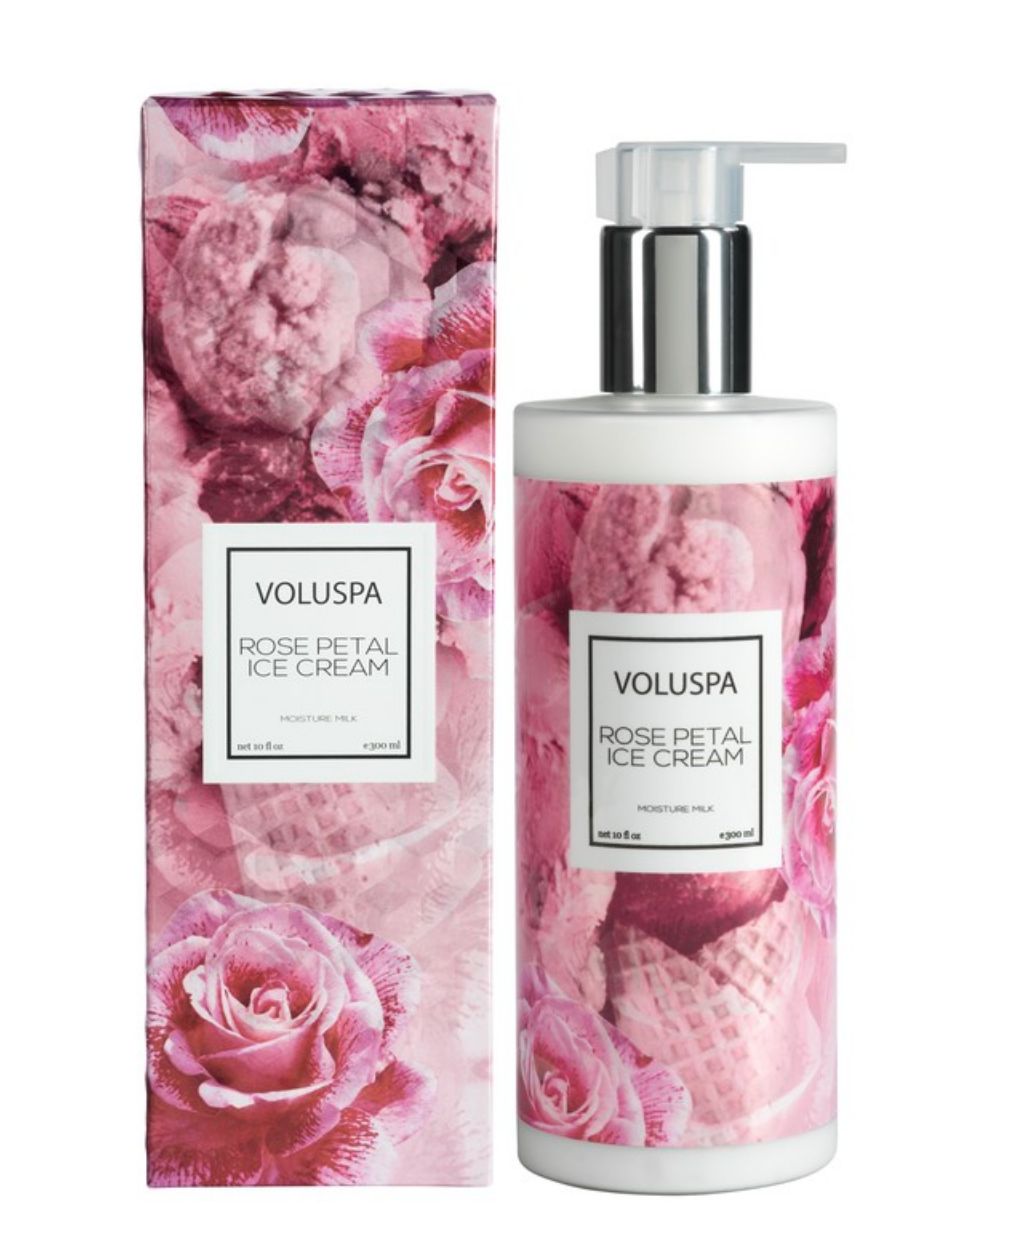 Roses Collection Moisture Milk Lotion by Voluspa - Pharm Favorites by Economy Pharmacy